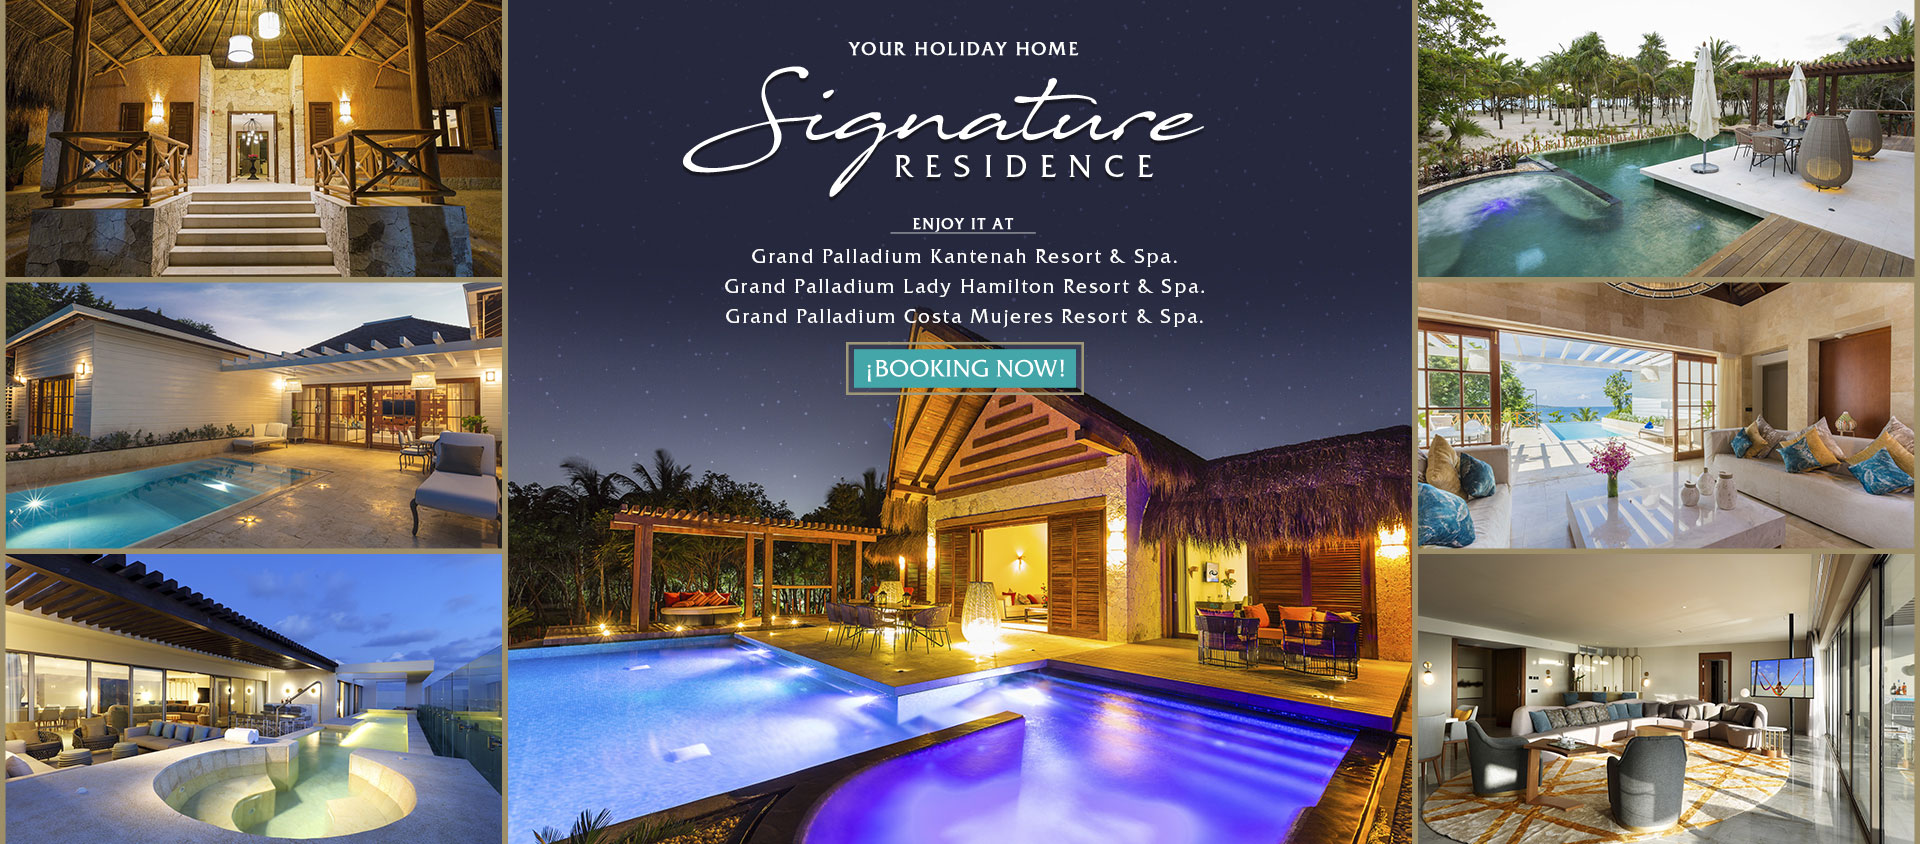 Signature Residence